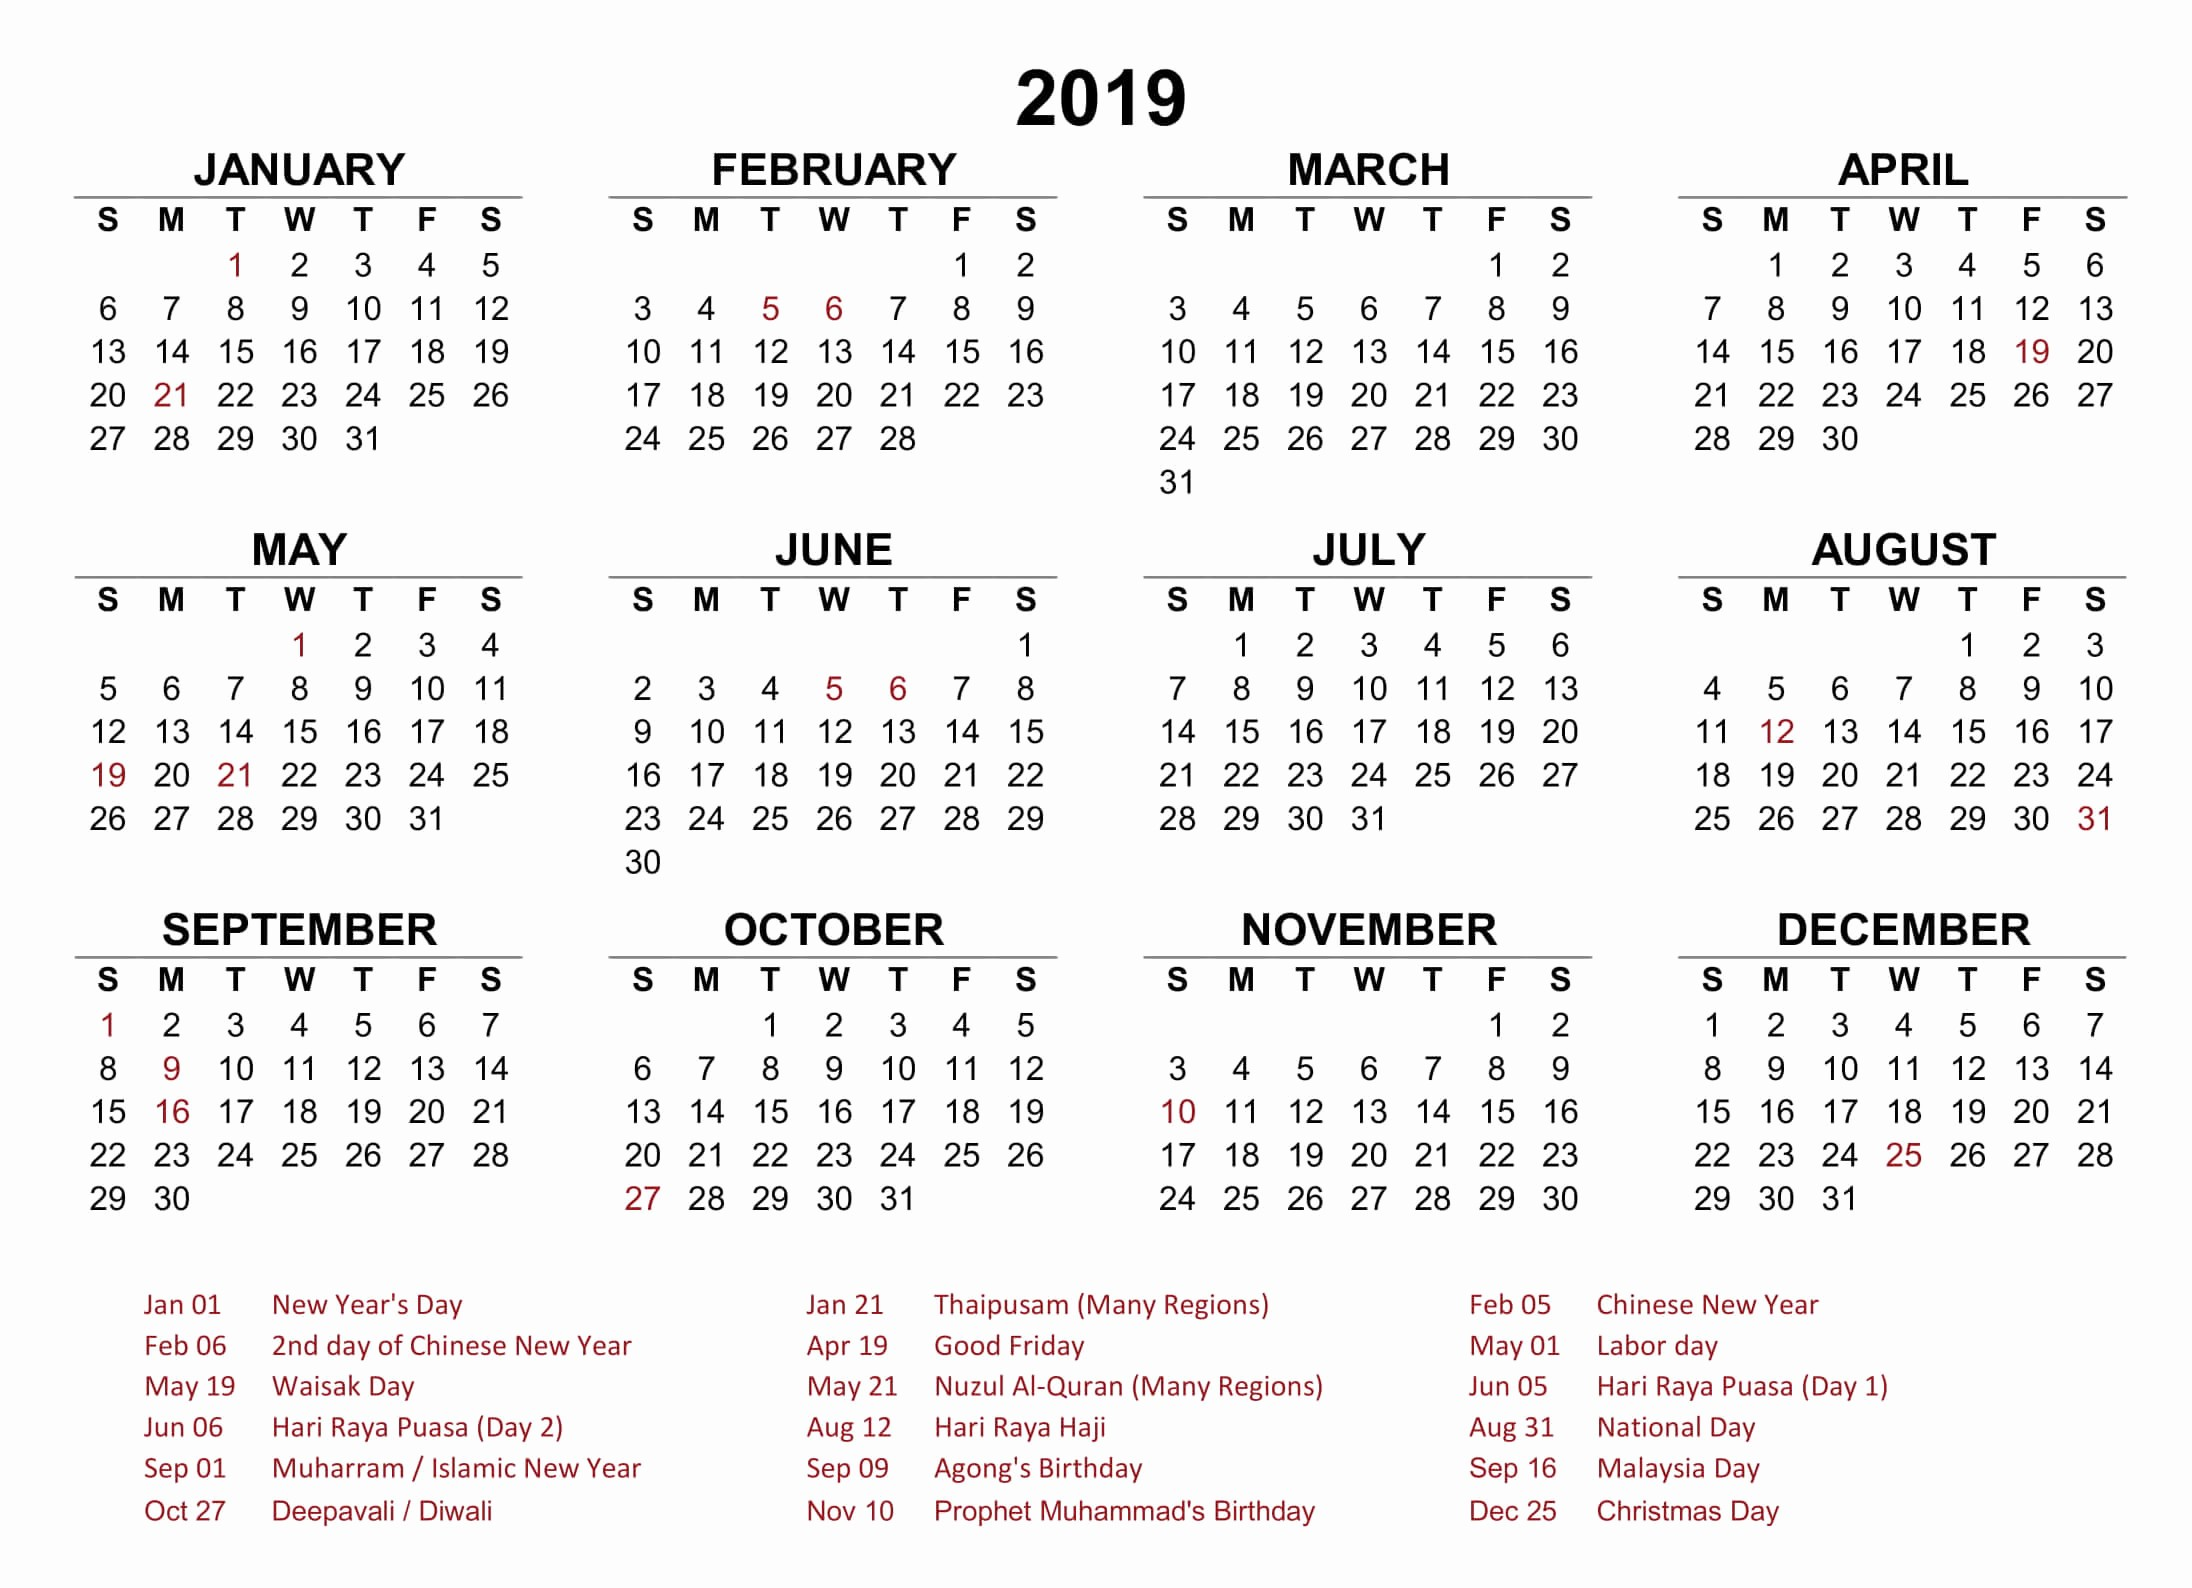 2019 Yearly Calendar with Holidays Fresh 12 Month Yearly Calendar 2019 Archives 2018 Printable